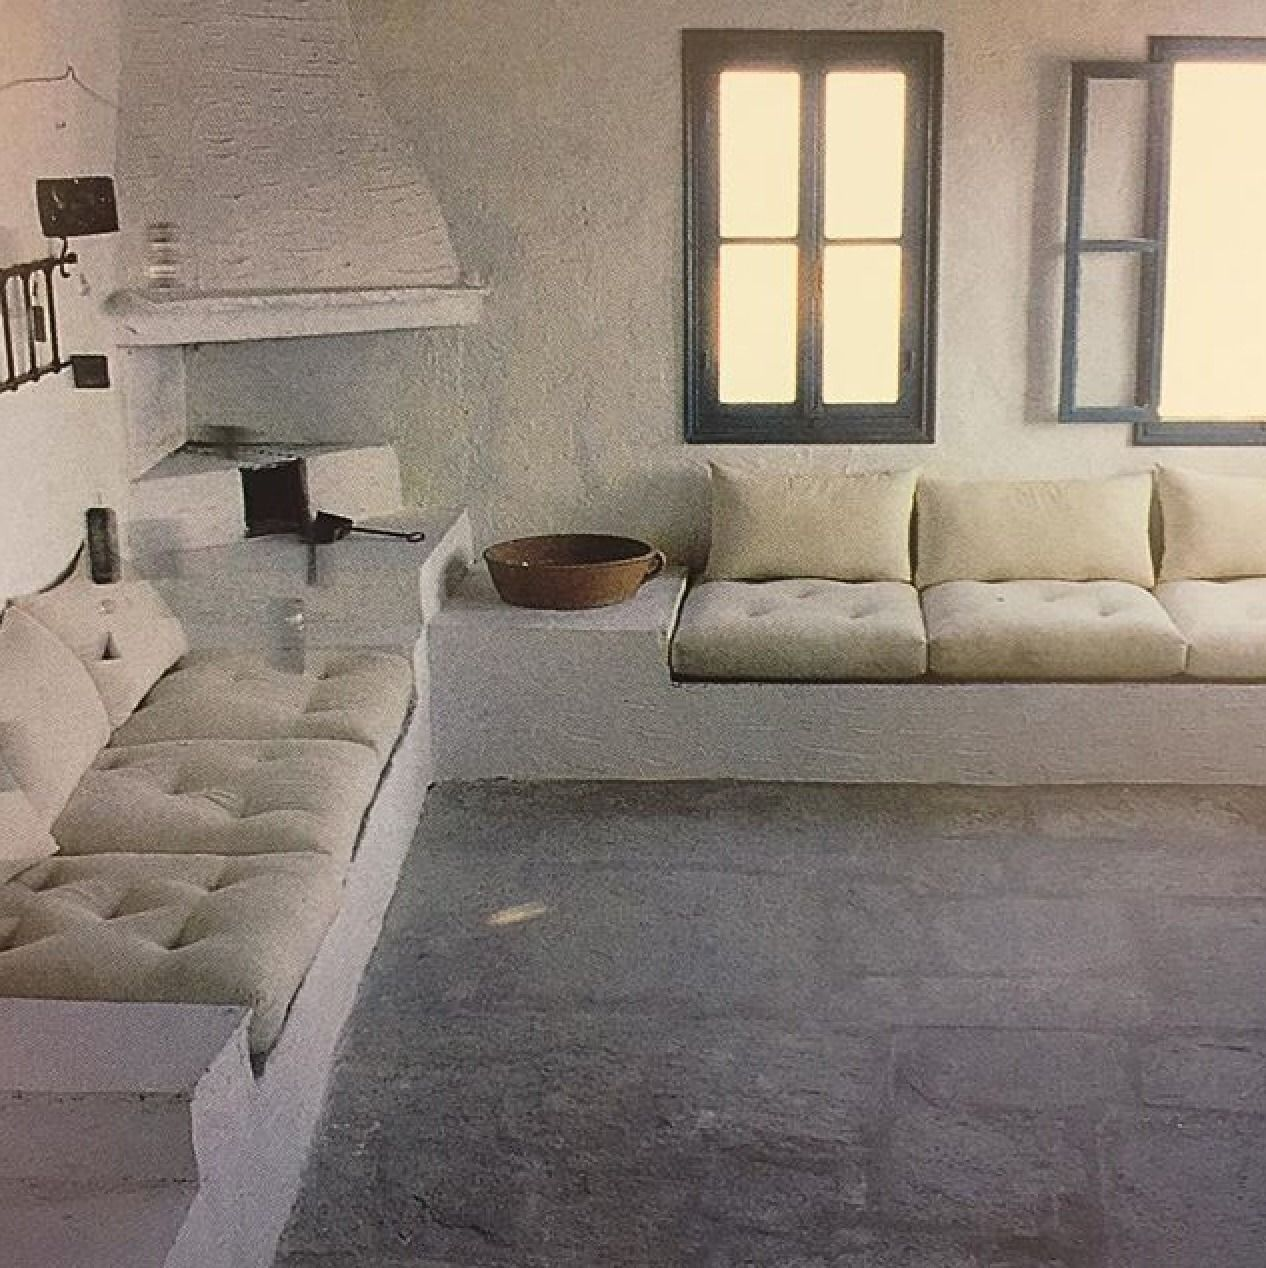 Greece 1980s 1980s modern chairs midcentury modern new living room living room